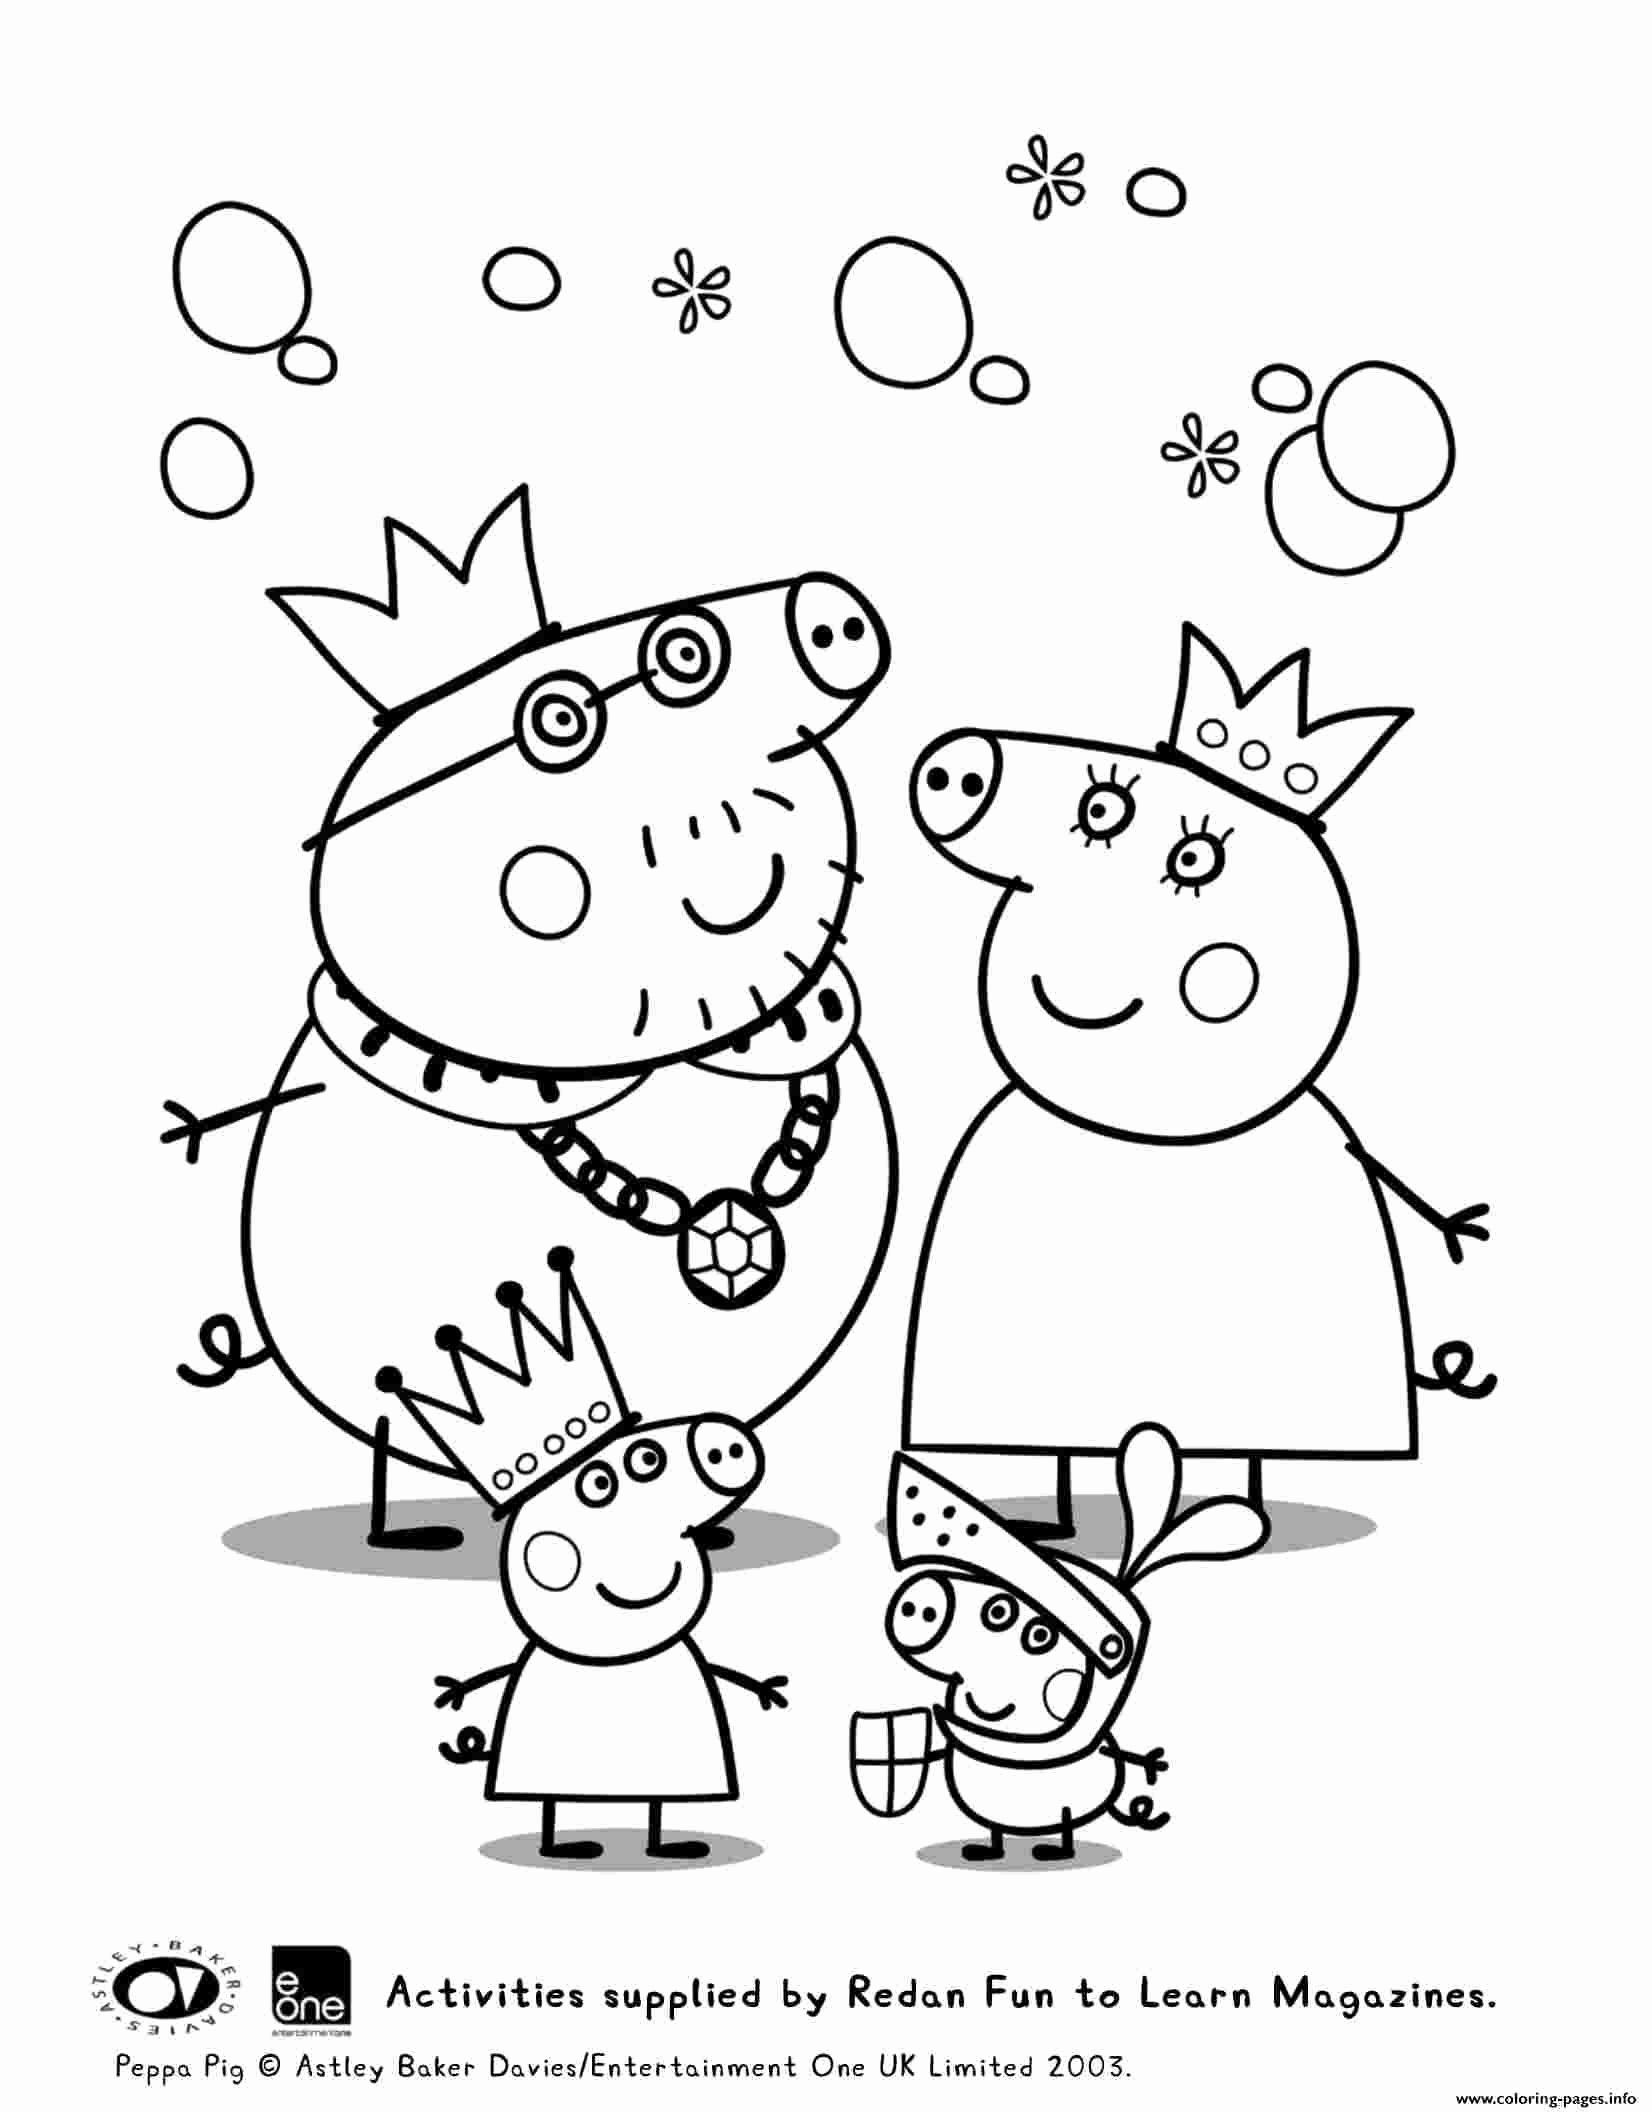 Peppa Pig Halloween Coloring Page Halloween Coloring Sheets Peppa Pig Coloring Pages Halloween Coloring Pages